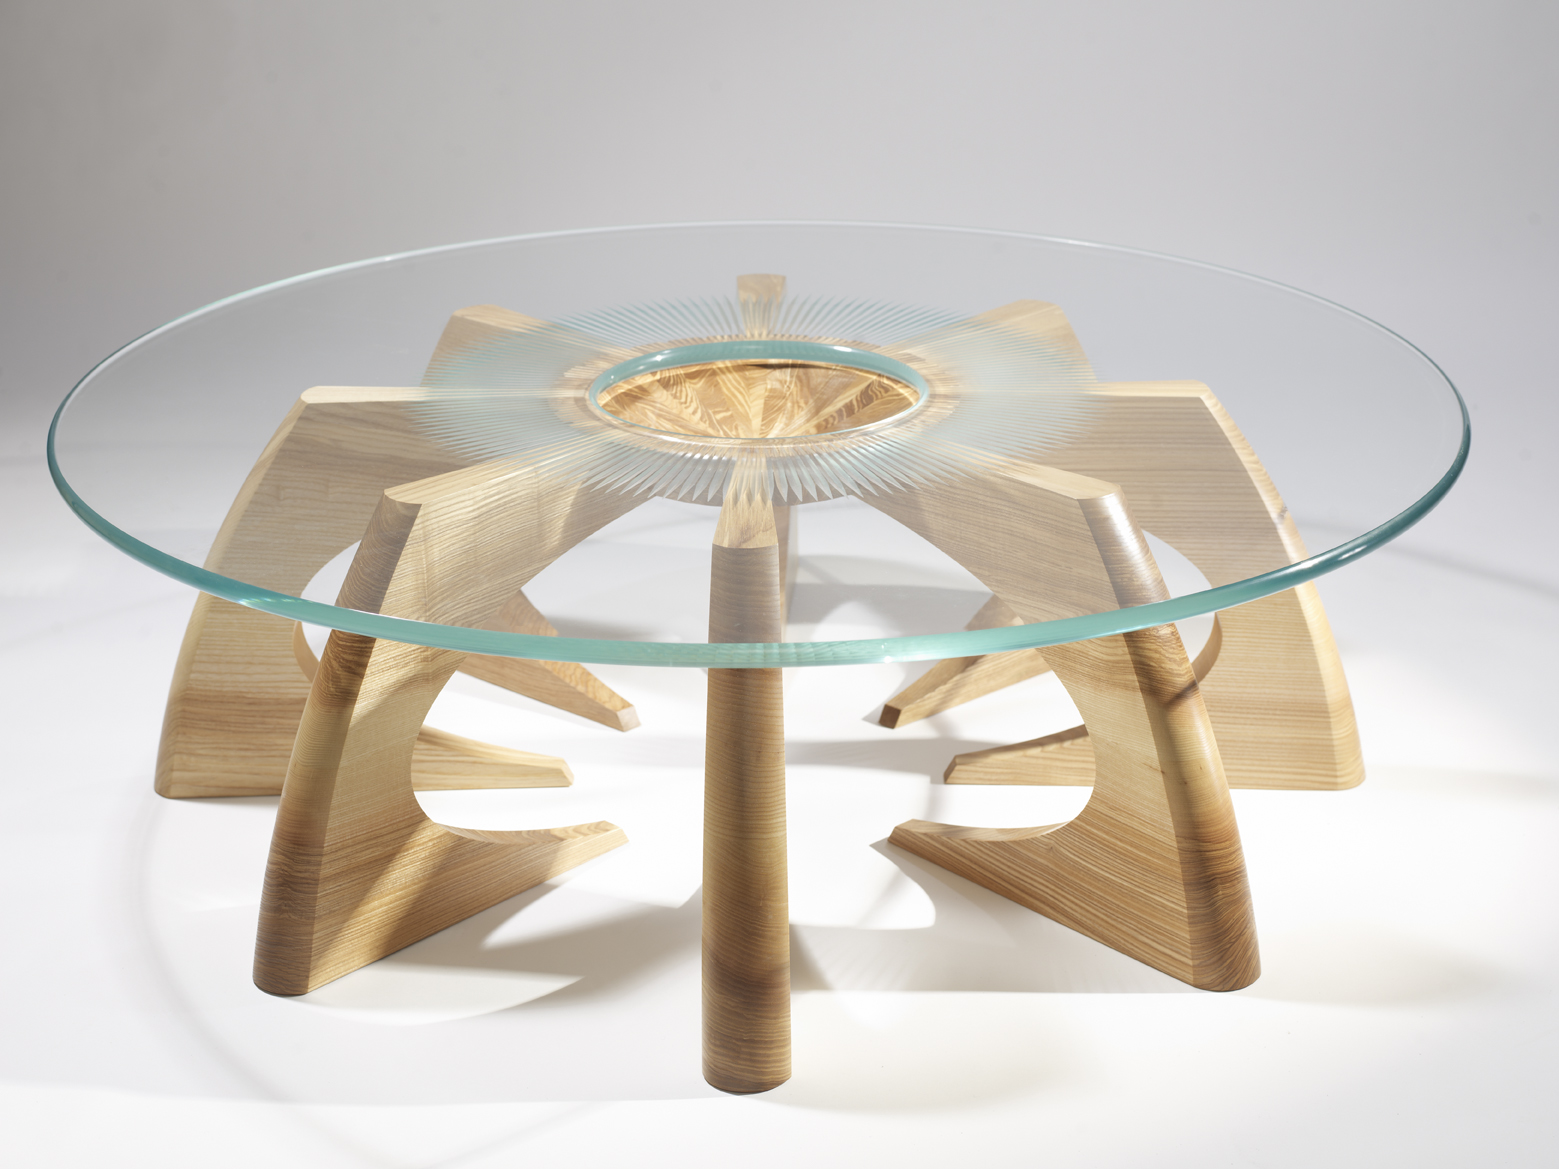 Interior house design a minimalist table but can produce for Wooden table designs images